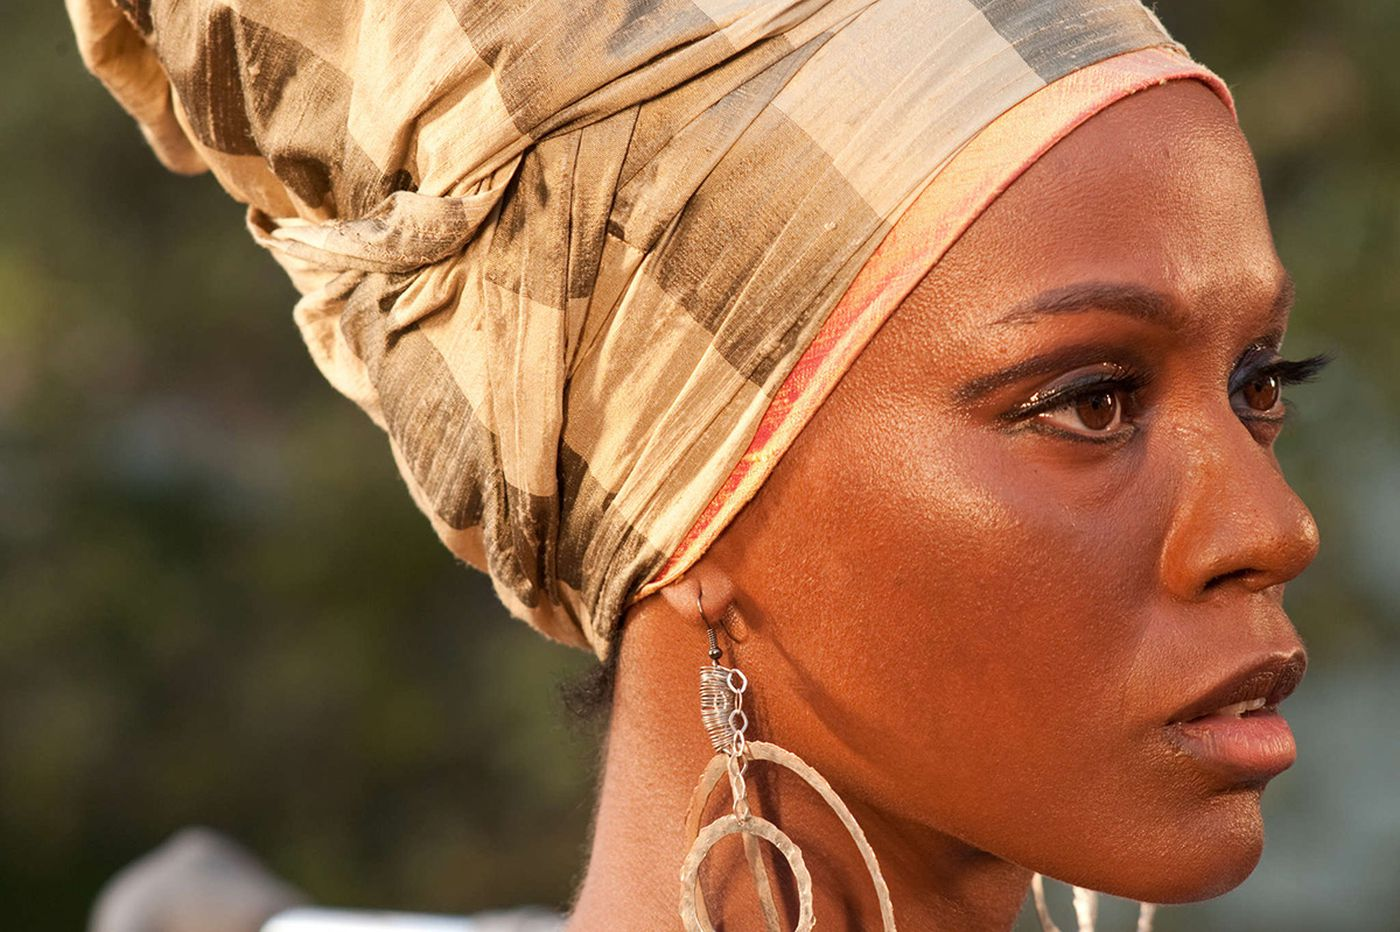 'Nina': The troubles with this listless biopic go beyond casting Saldana for the role